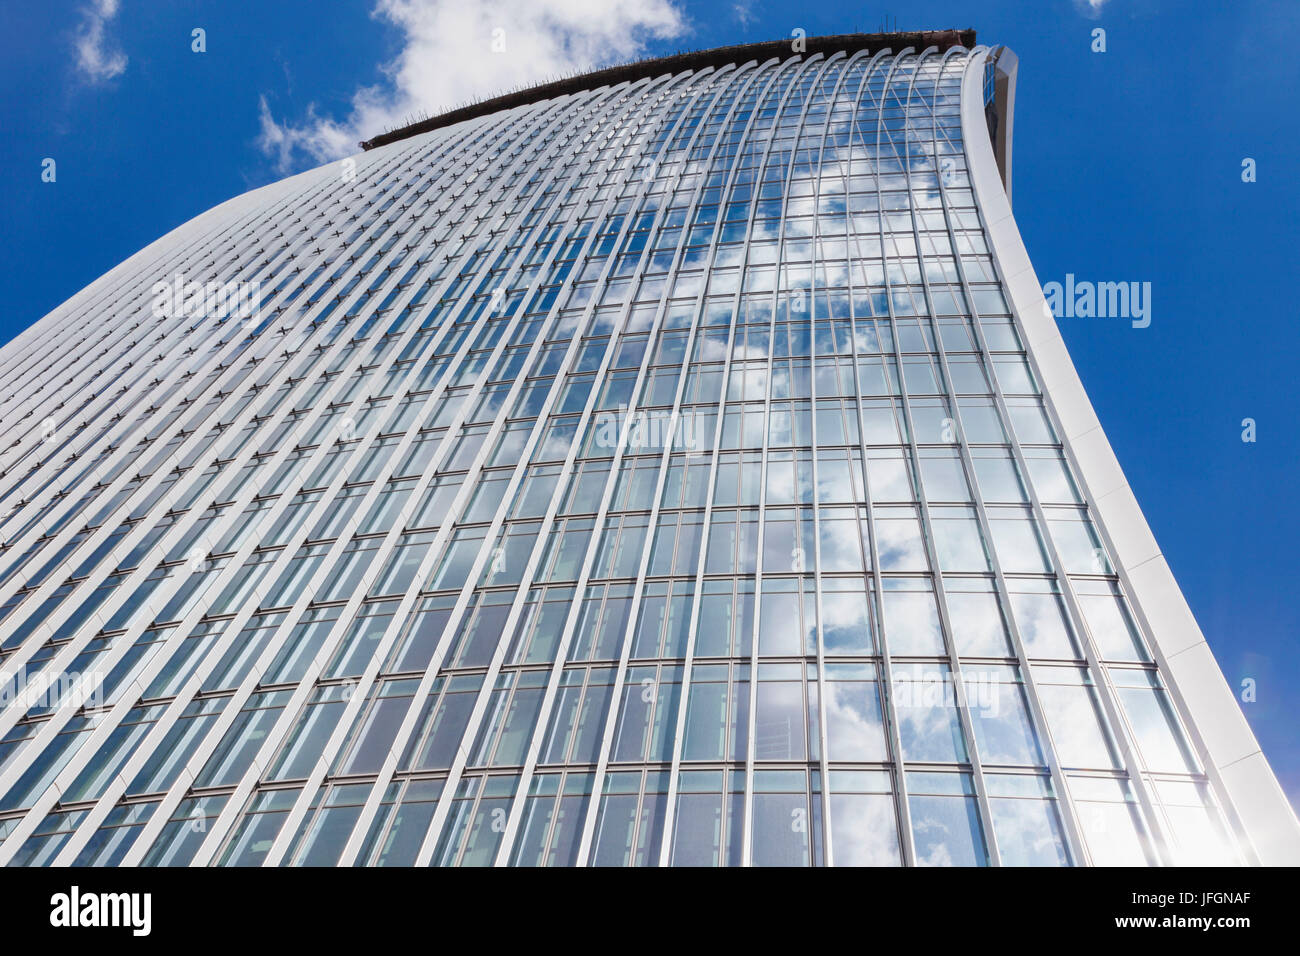 England, London, City of London, Partial View of The Walkie Talkie Building - Stock Image